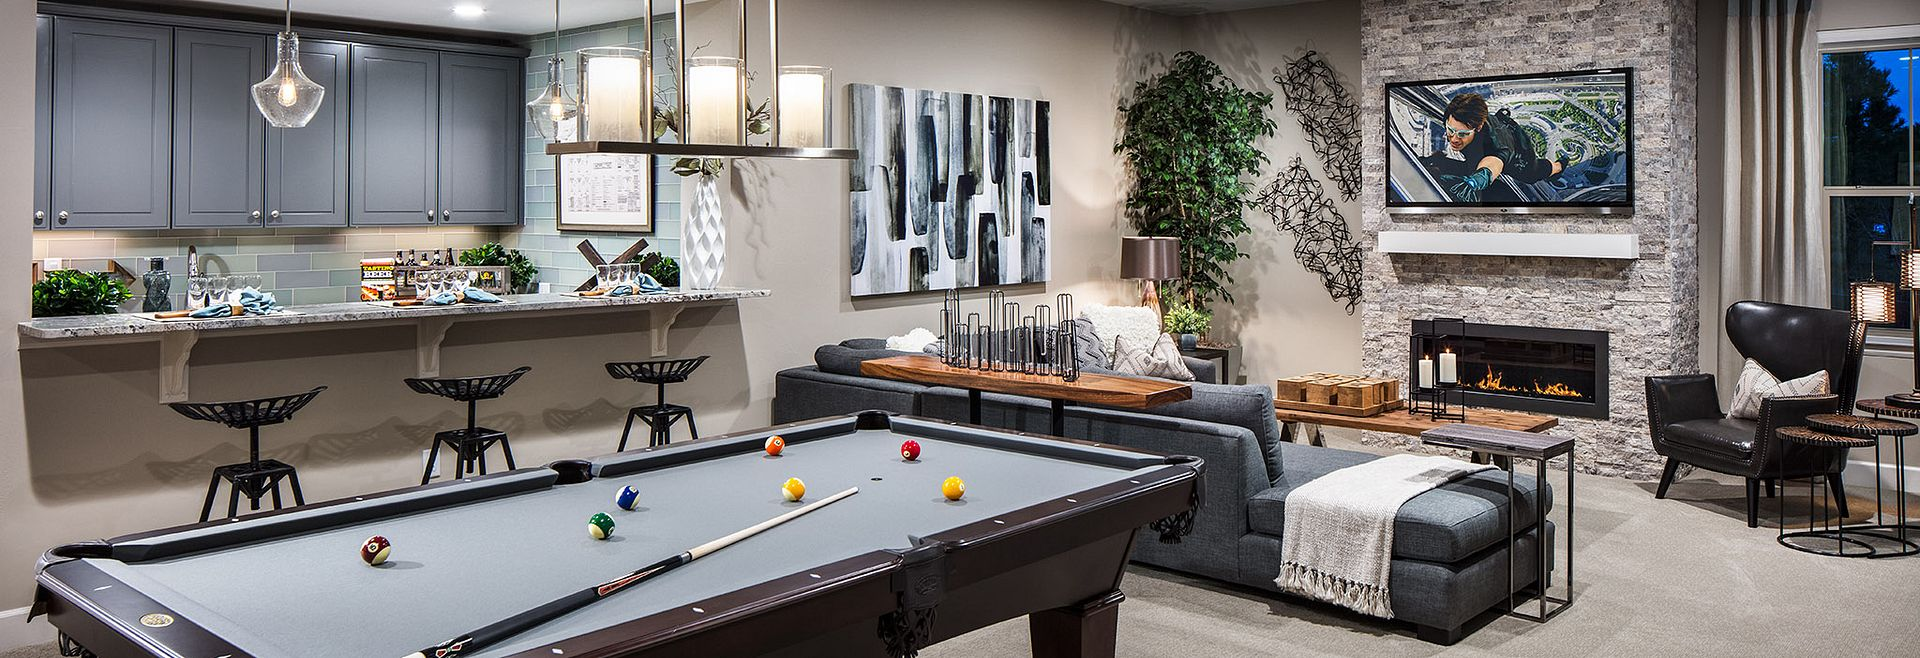 Recreation room with pool table and TV